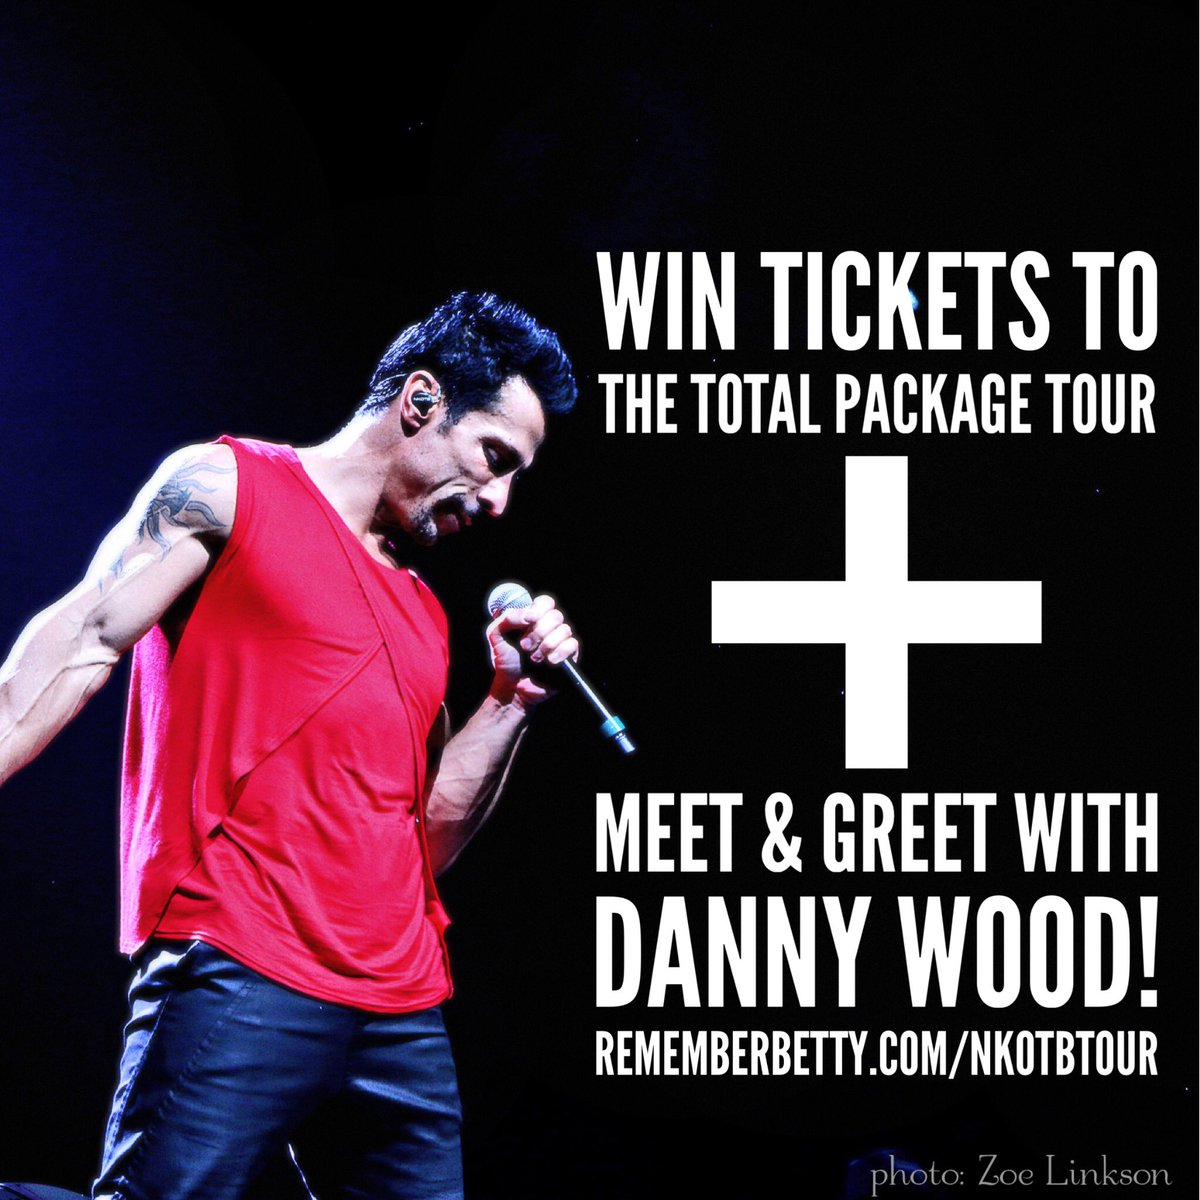 Happy @NKOTB Day! Celebrate by entering to win #TotalPackageTour tix + M&G with @dannywood! https://t.co/9l3DP1KzUl https://t.co/Jv3kiAnOfB